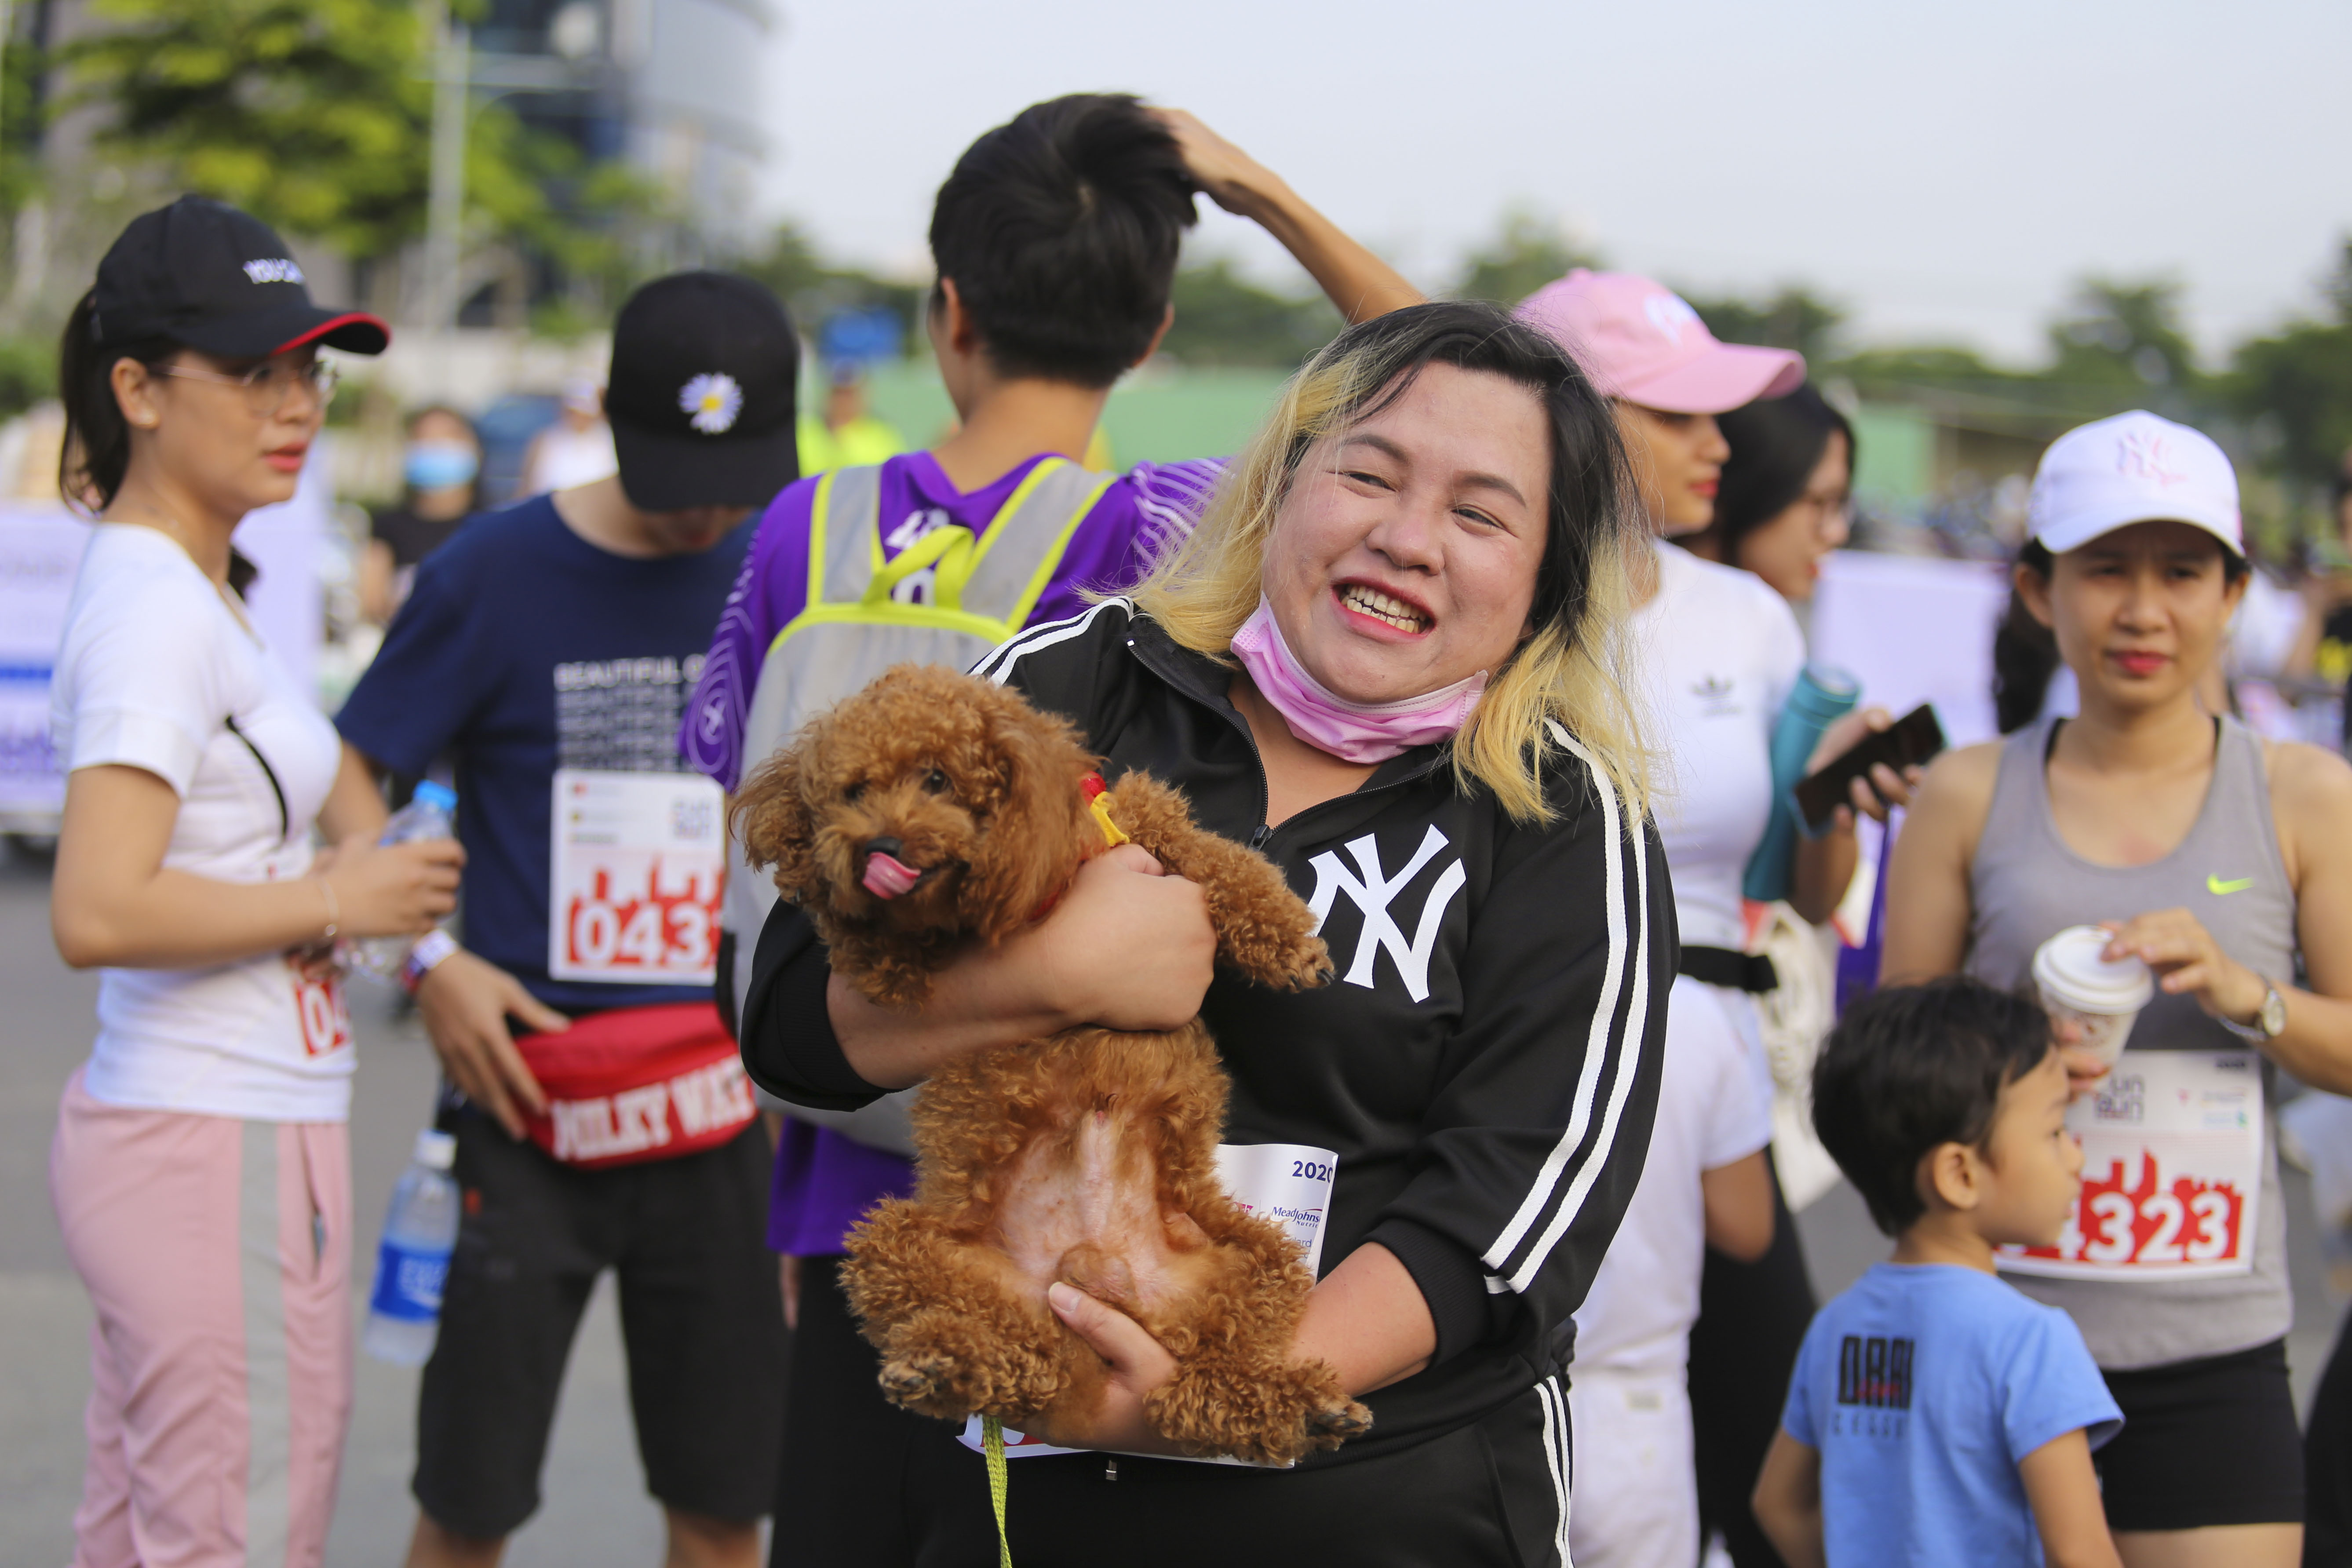 Pets were also welcomed at the 20th BritCham Charity Fun Run in Ho Chi Minh City on November 15,2020. Photo: Duc Khue/ Tuoi Tre